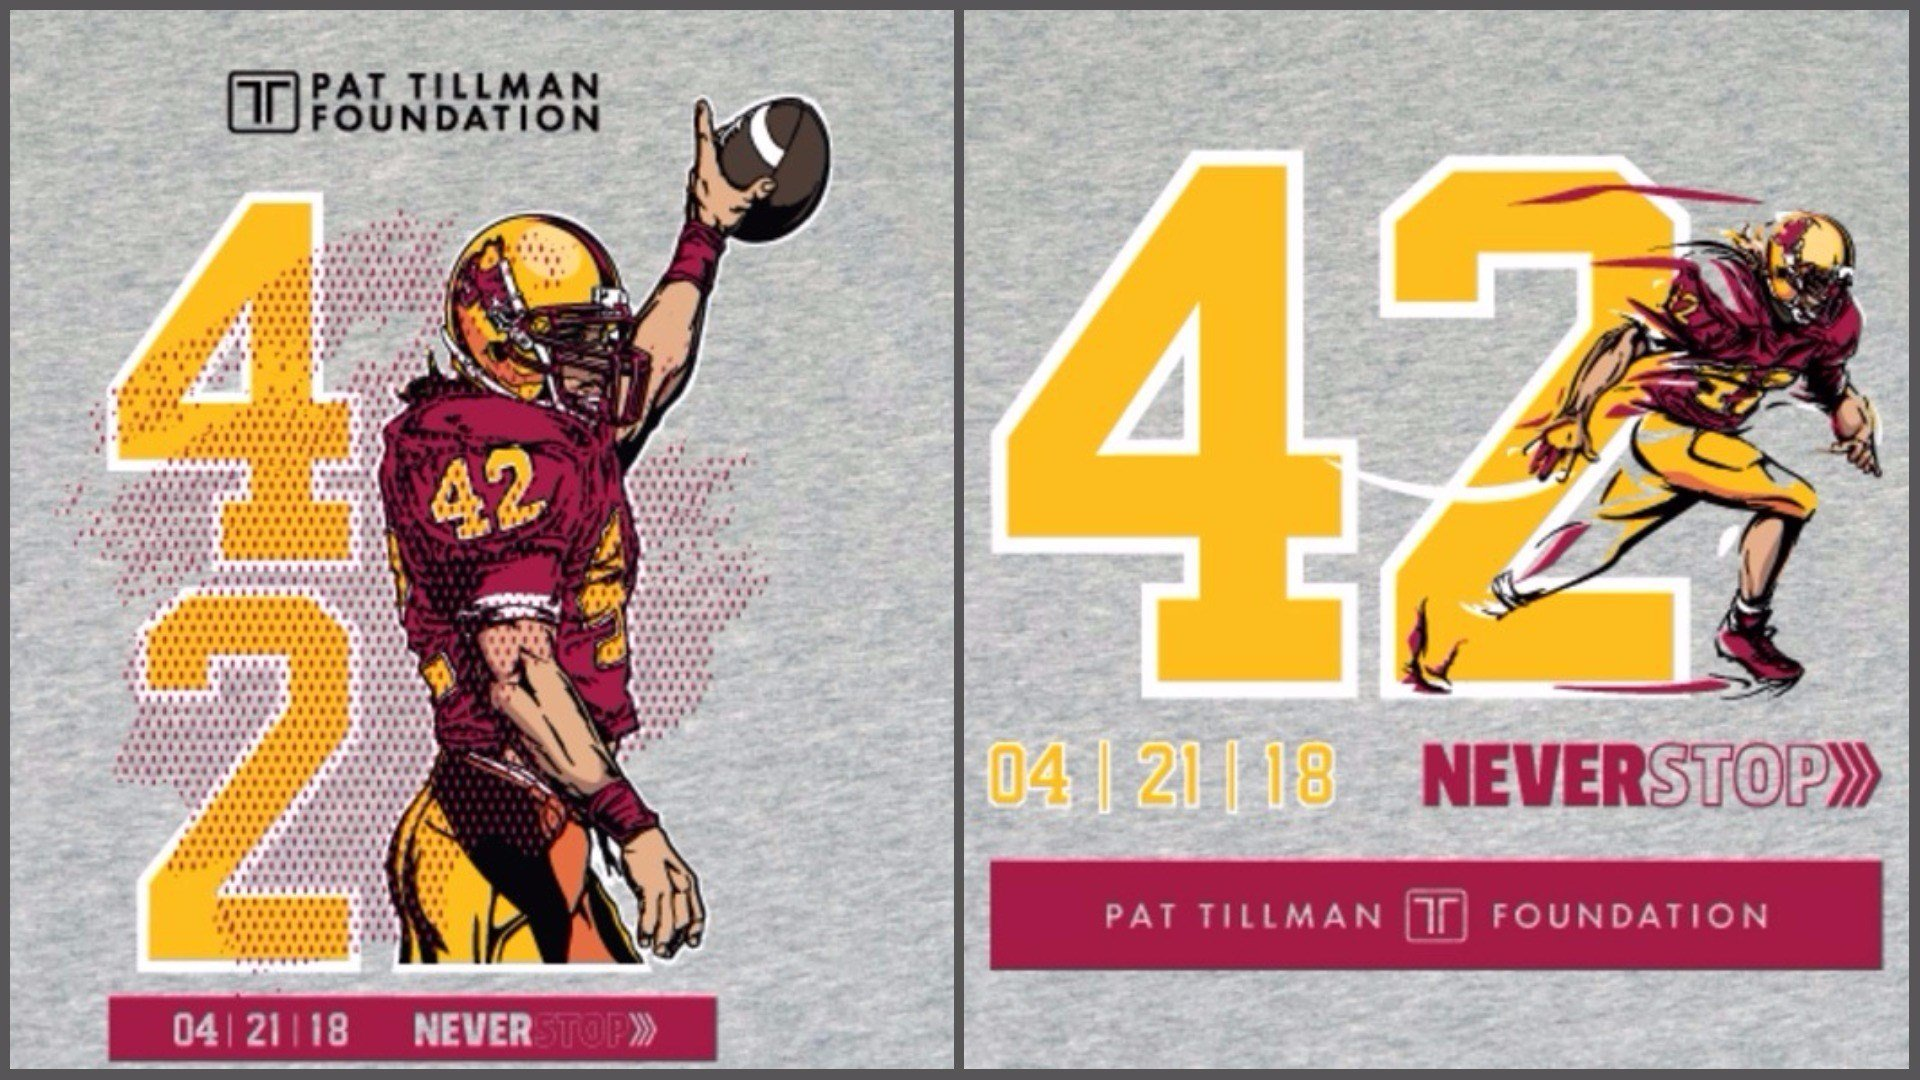 The Pat Tillman Foundation wants you to weigh in on the look of the limited-edition event T-shirt. (Source: Pat Tillman Foundation)